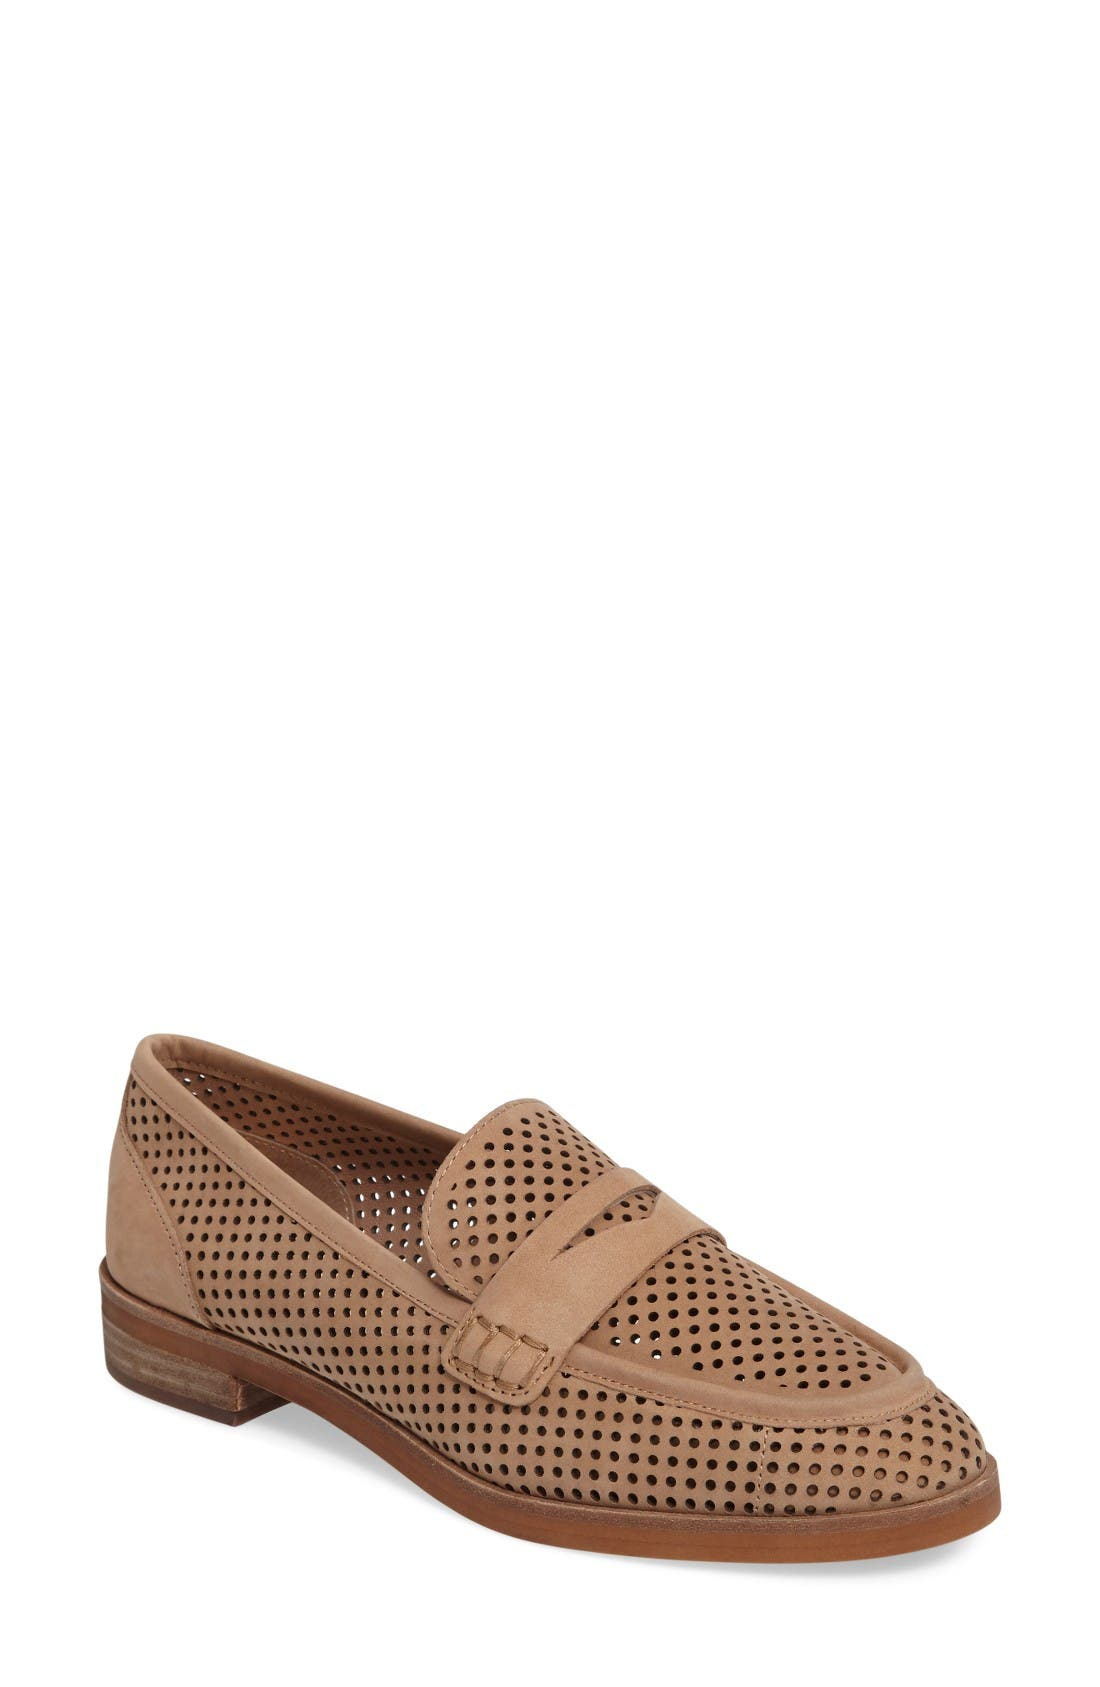 Vince Camuto Kanta Perforated Loafer (Women)